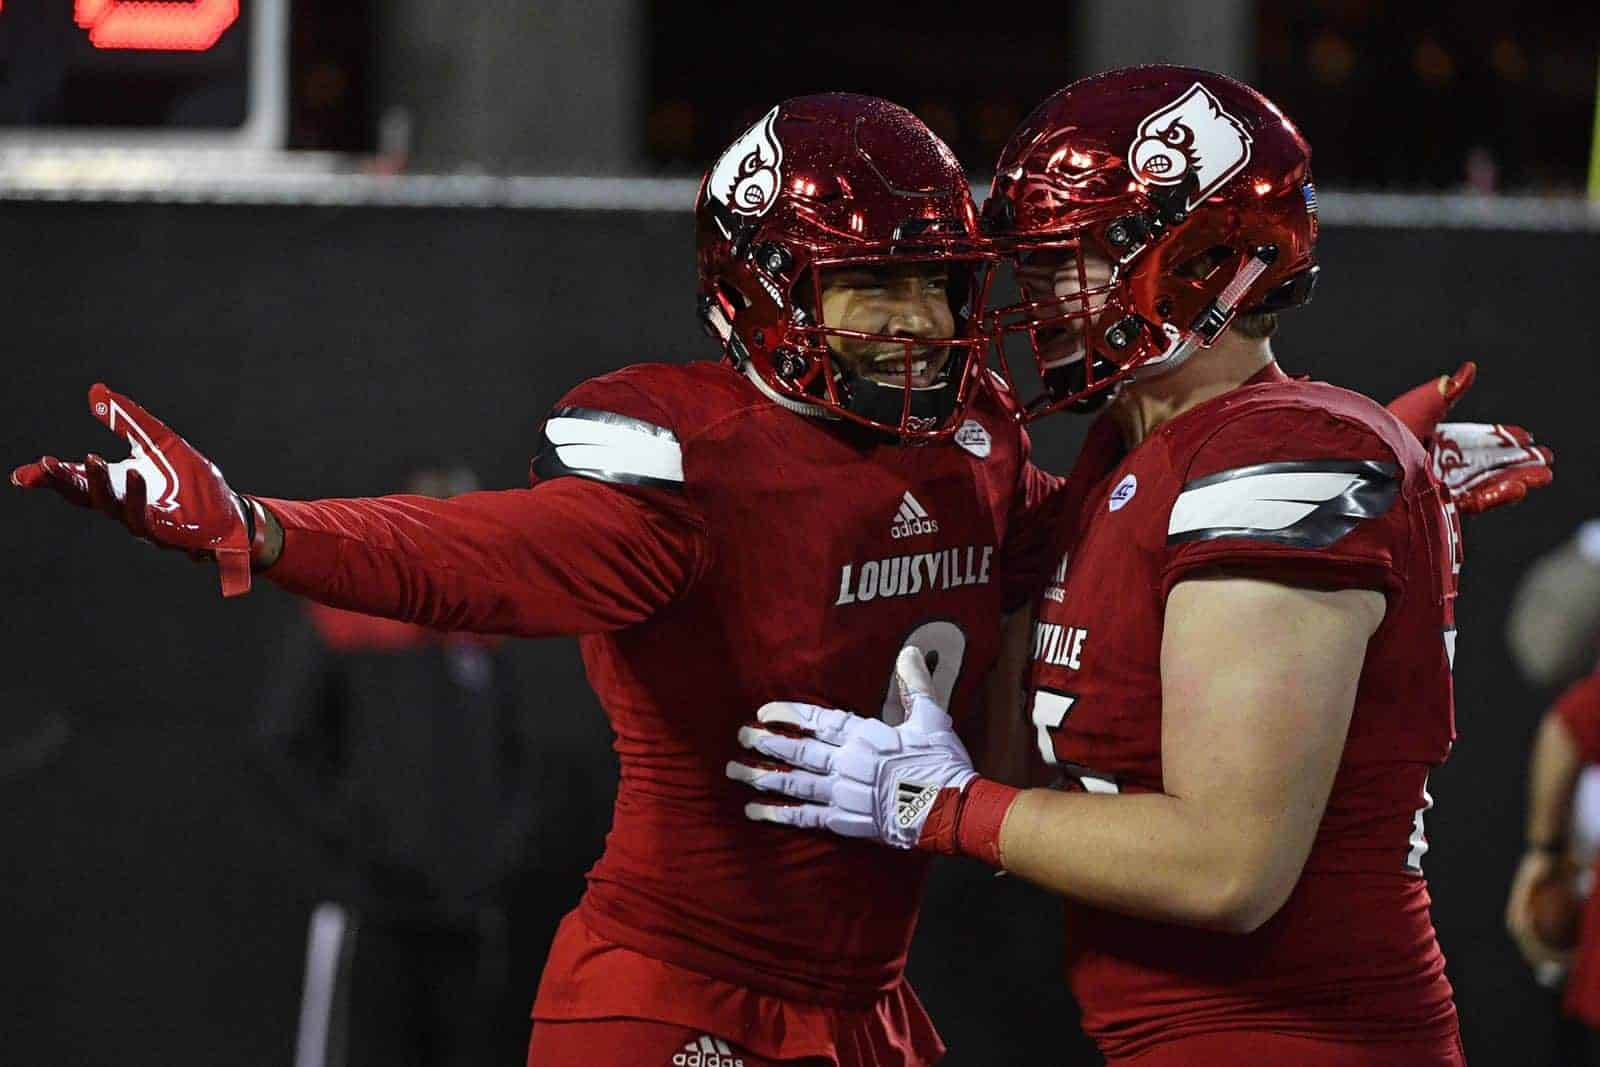 College Football Schedule: Louisville